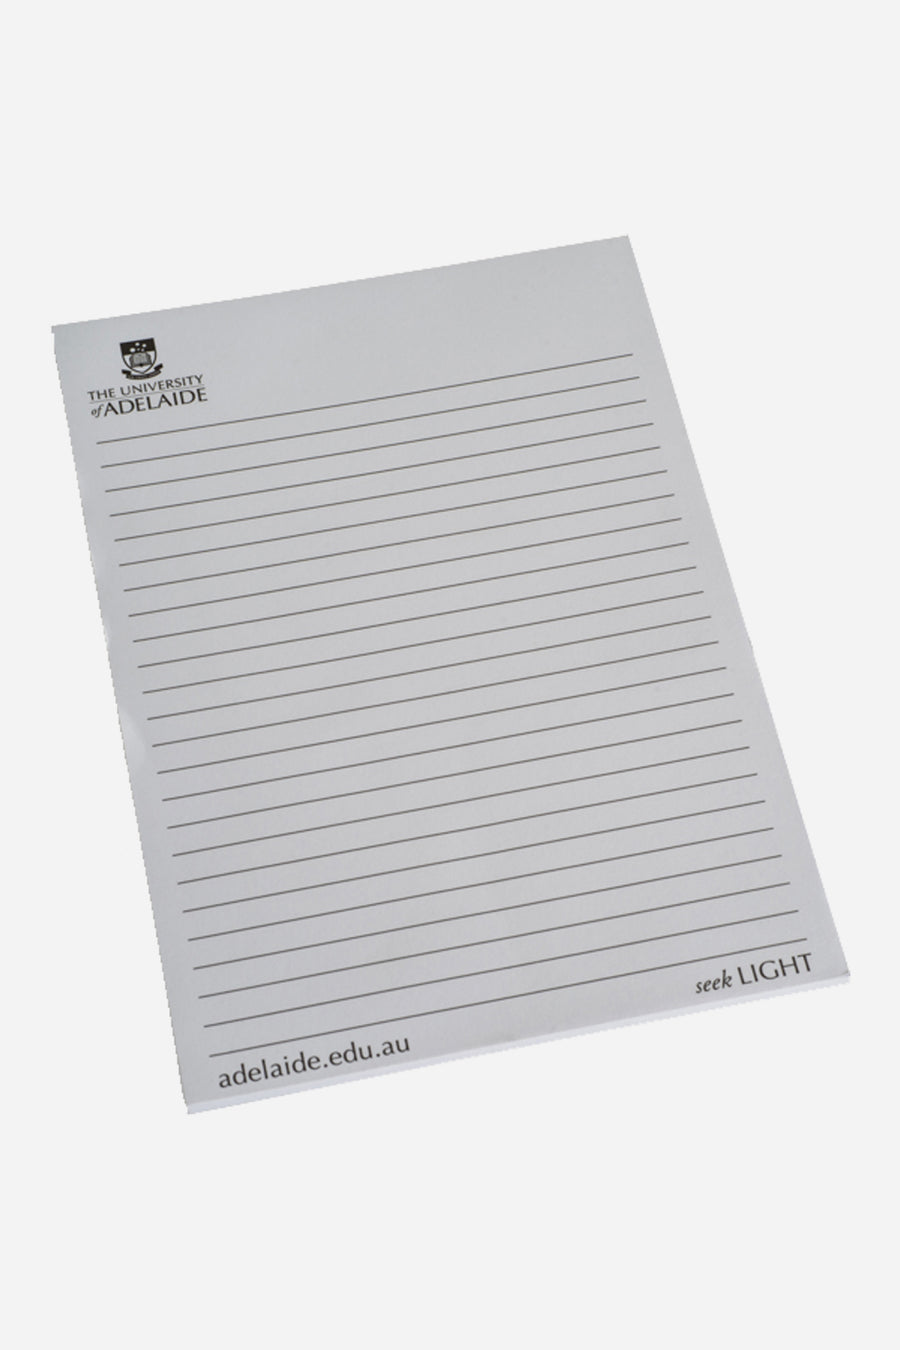 A5 Note Pad - The Adelaide Store